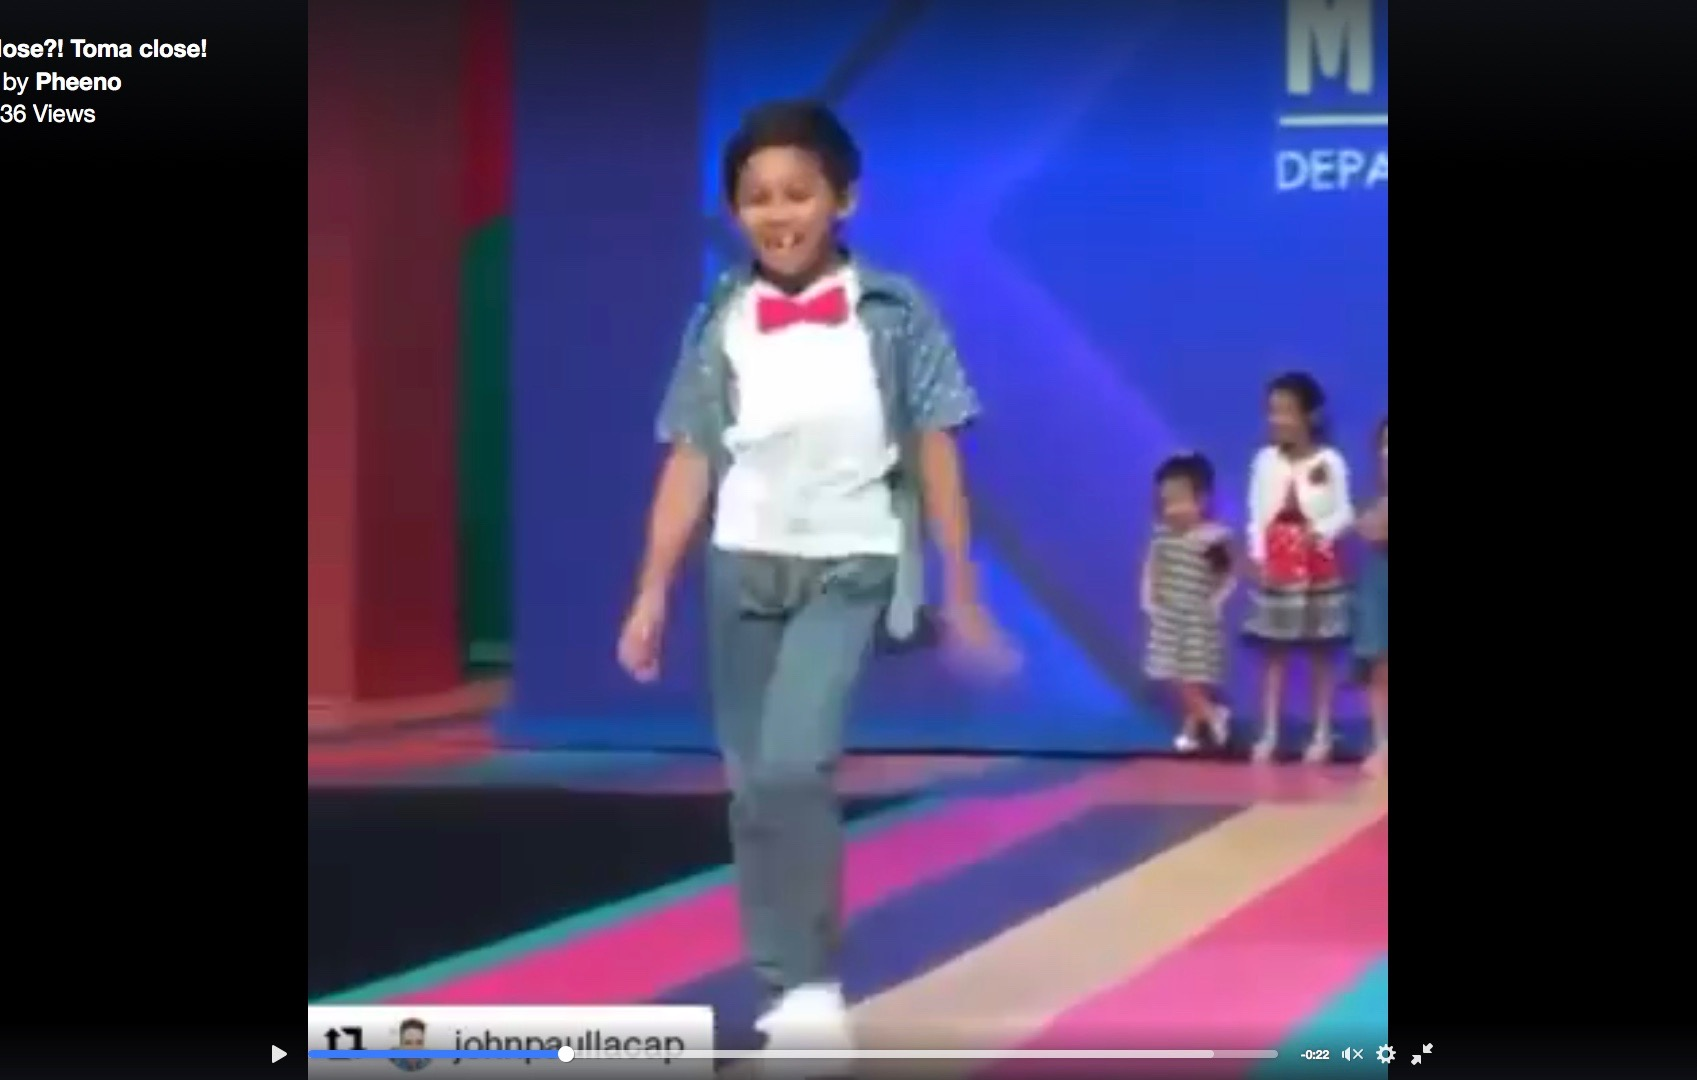 Young boy turns into crowd favorite at children's fashion show